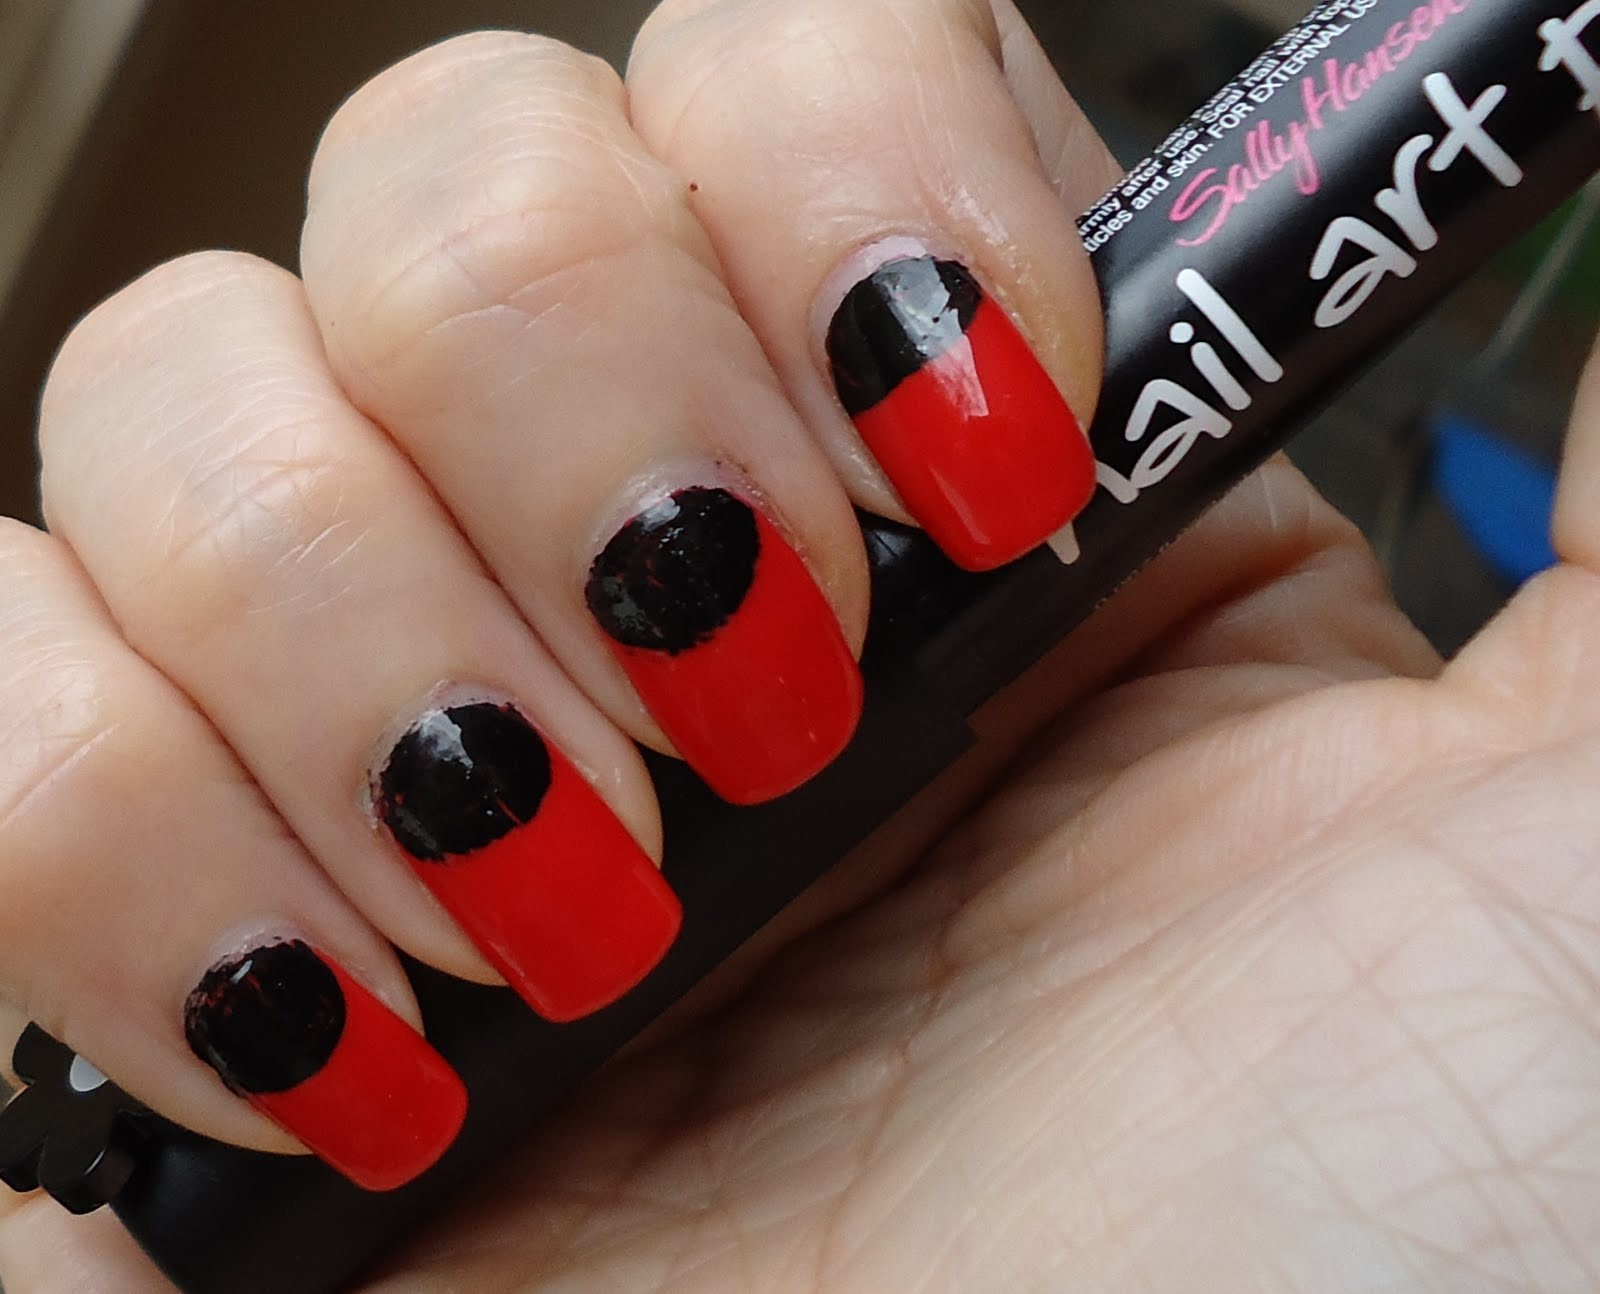 Making Up 4 My Age Review Sally Hansen Nail Art Pen